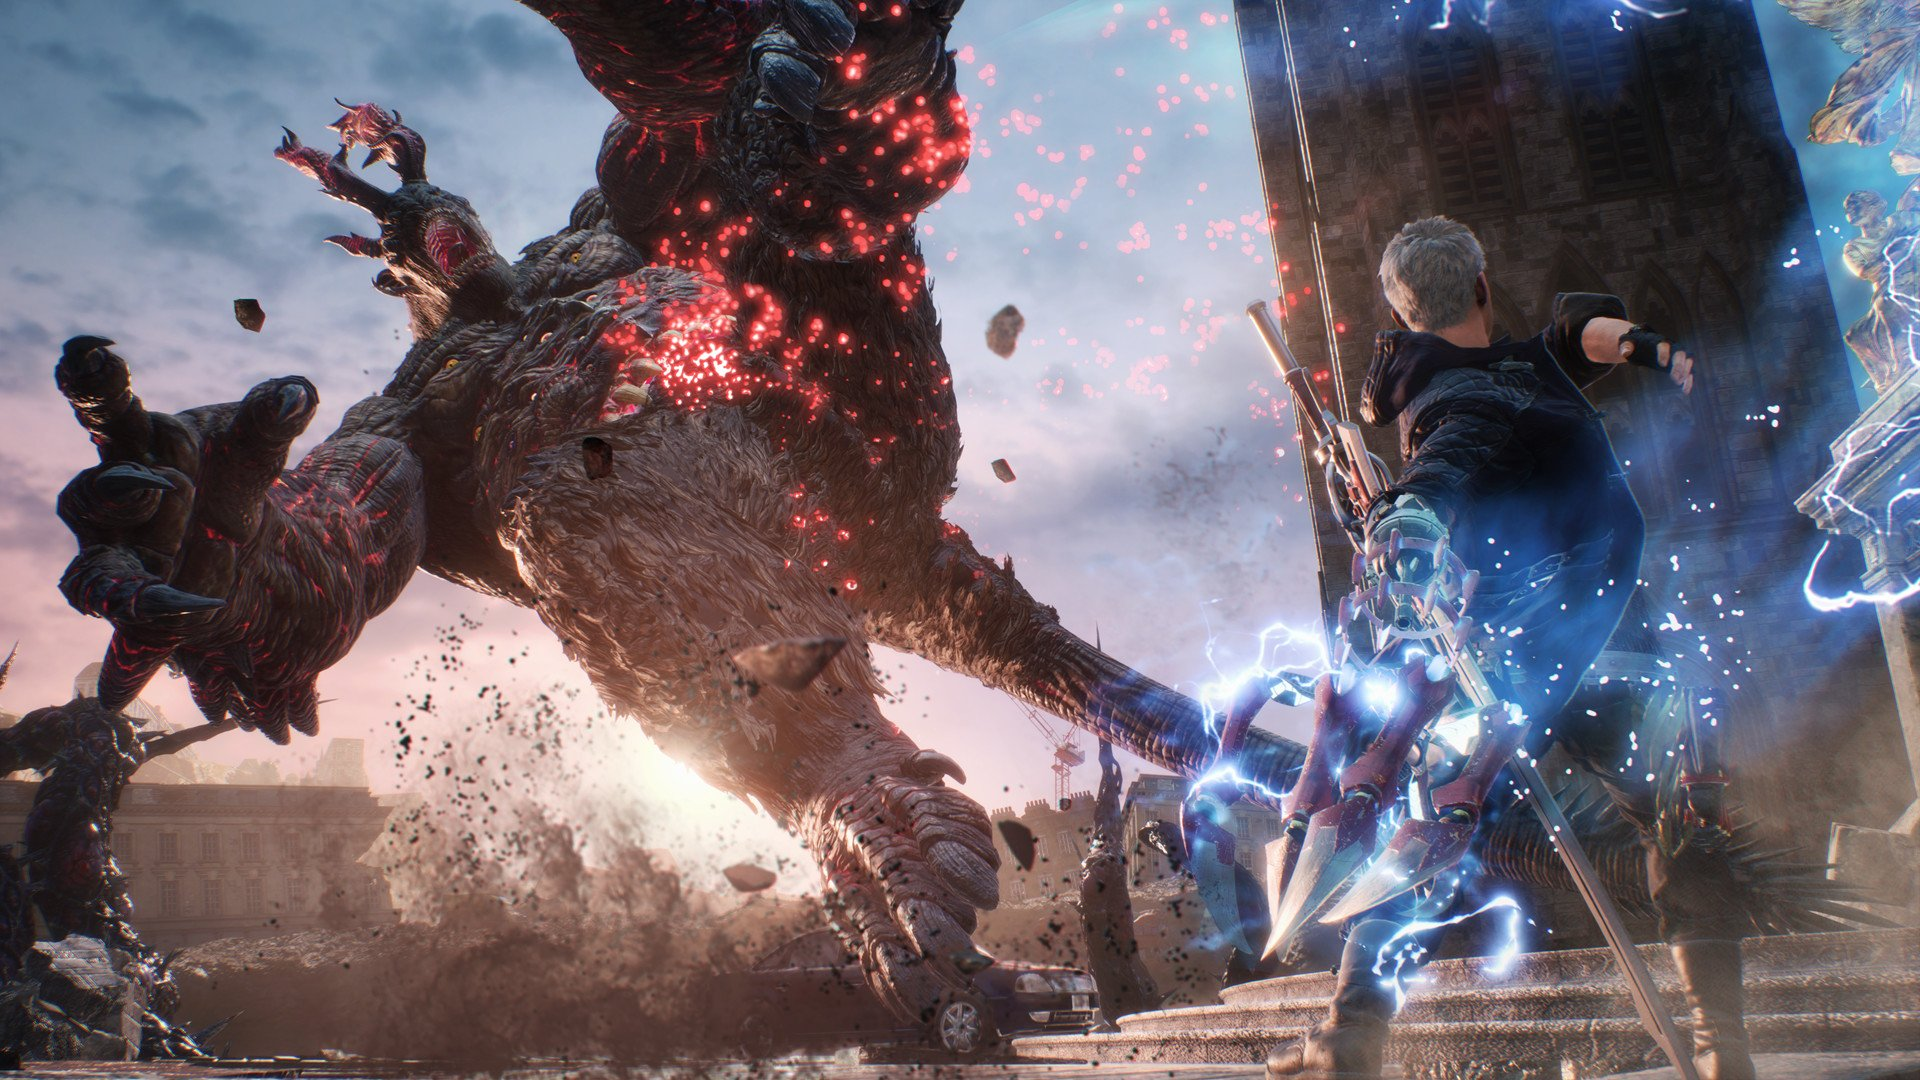 The Infinite Devil Trigger ability removes the need to charge special abilities before use in Devil May Cry 5.